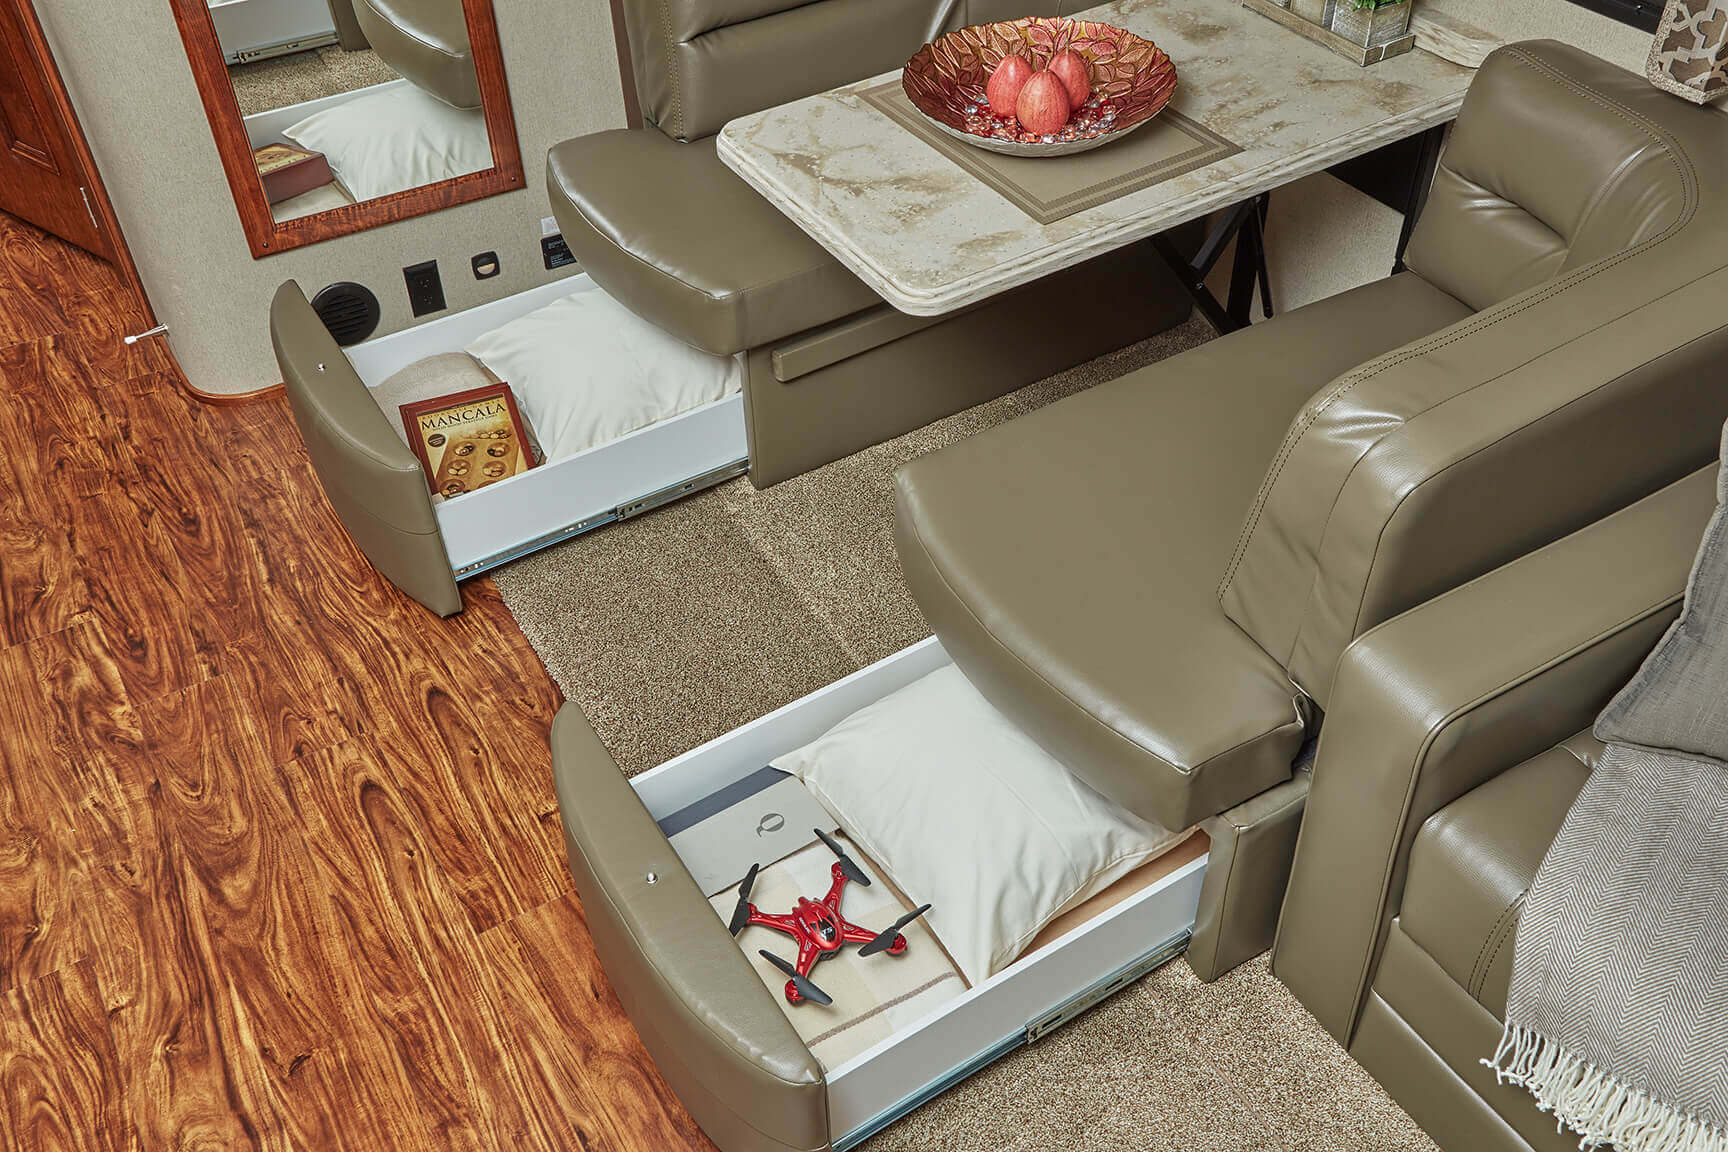 Freightliner Motorhomes Renegade Verona Motor Coach 04 F350 Glow Plug Wiring Diagram On 40vbh Enjoy 30 X 80 Bunk Beds With Privacy Curtains